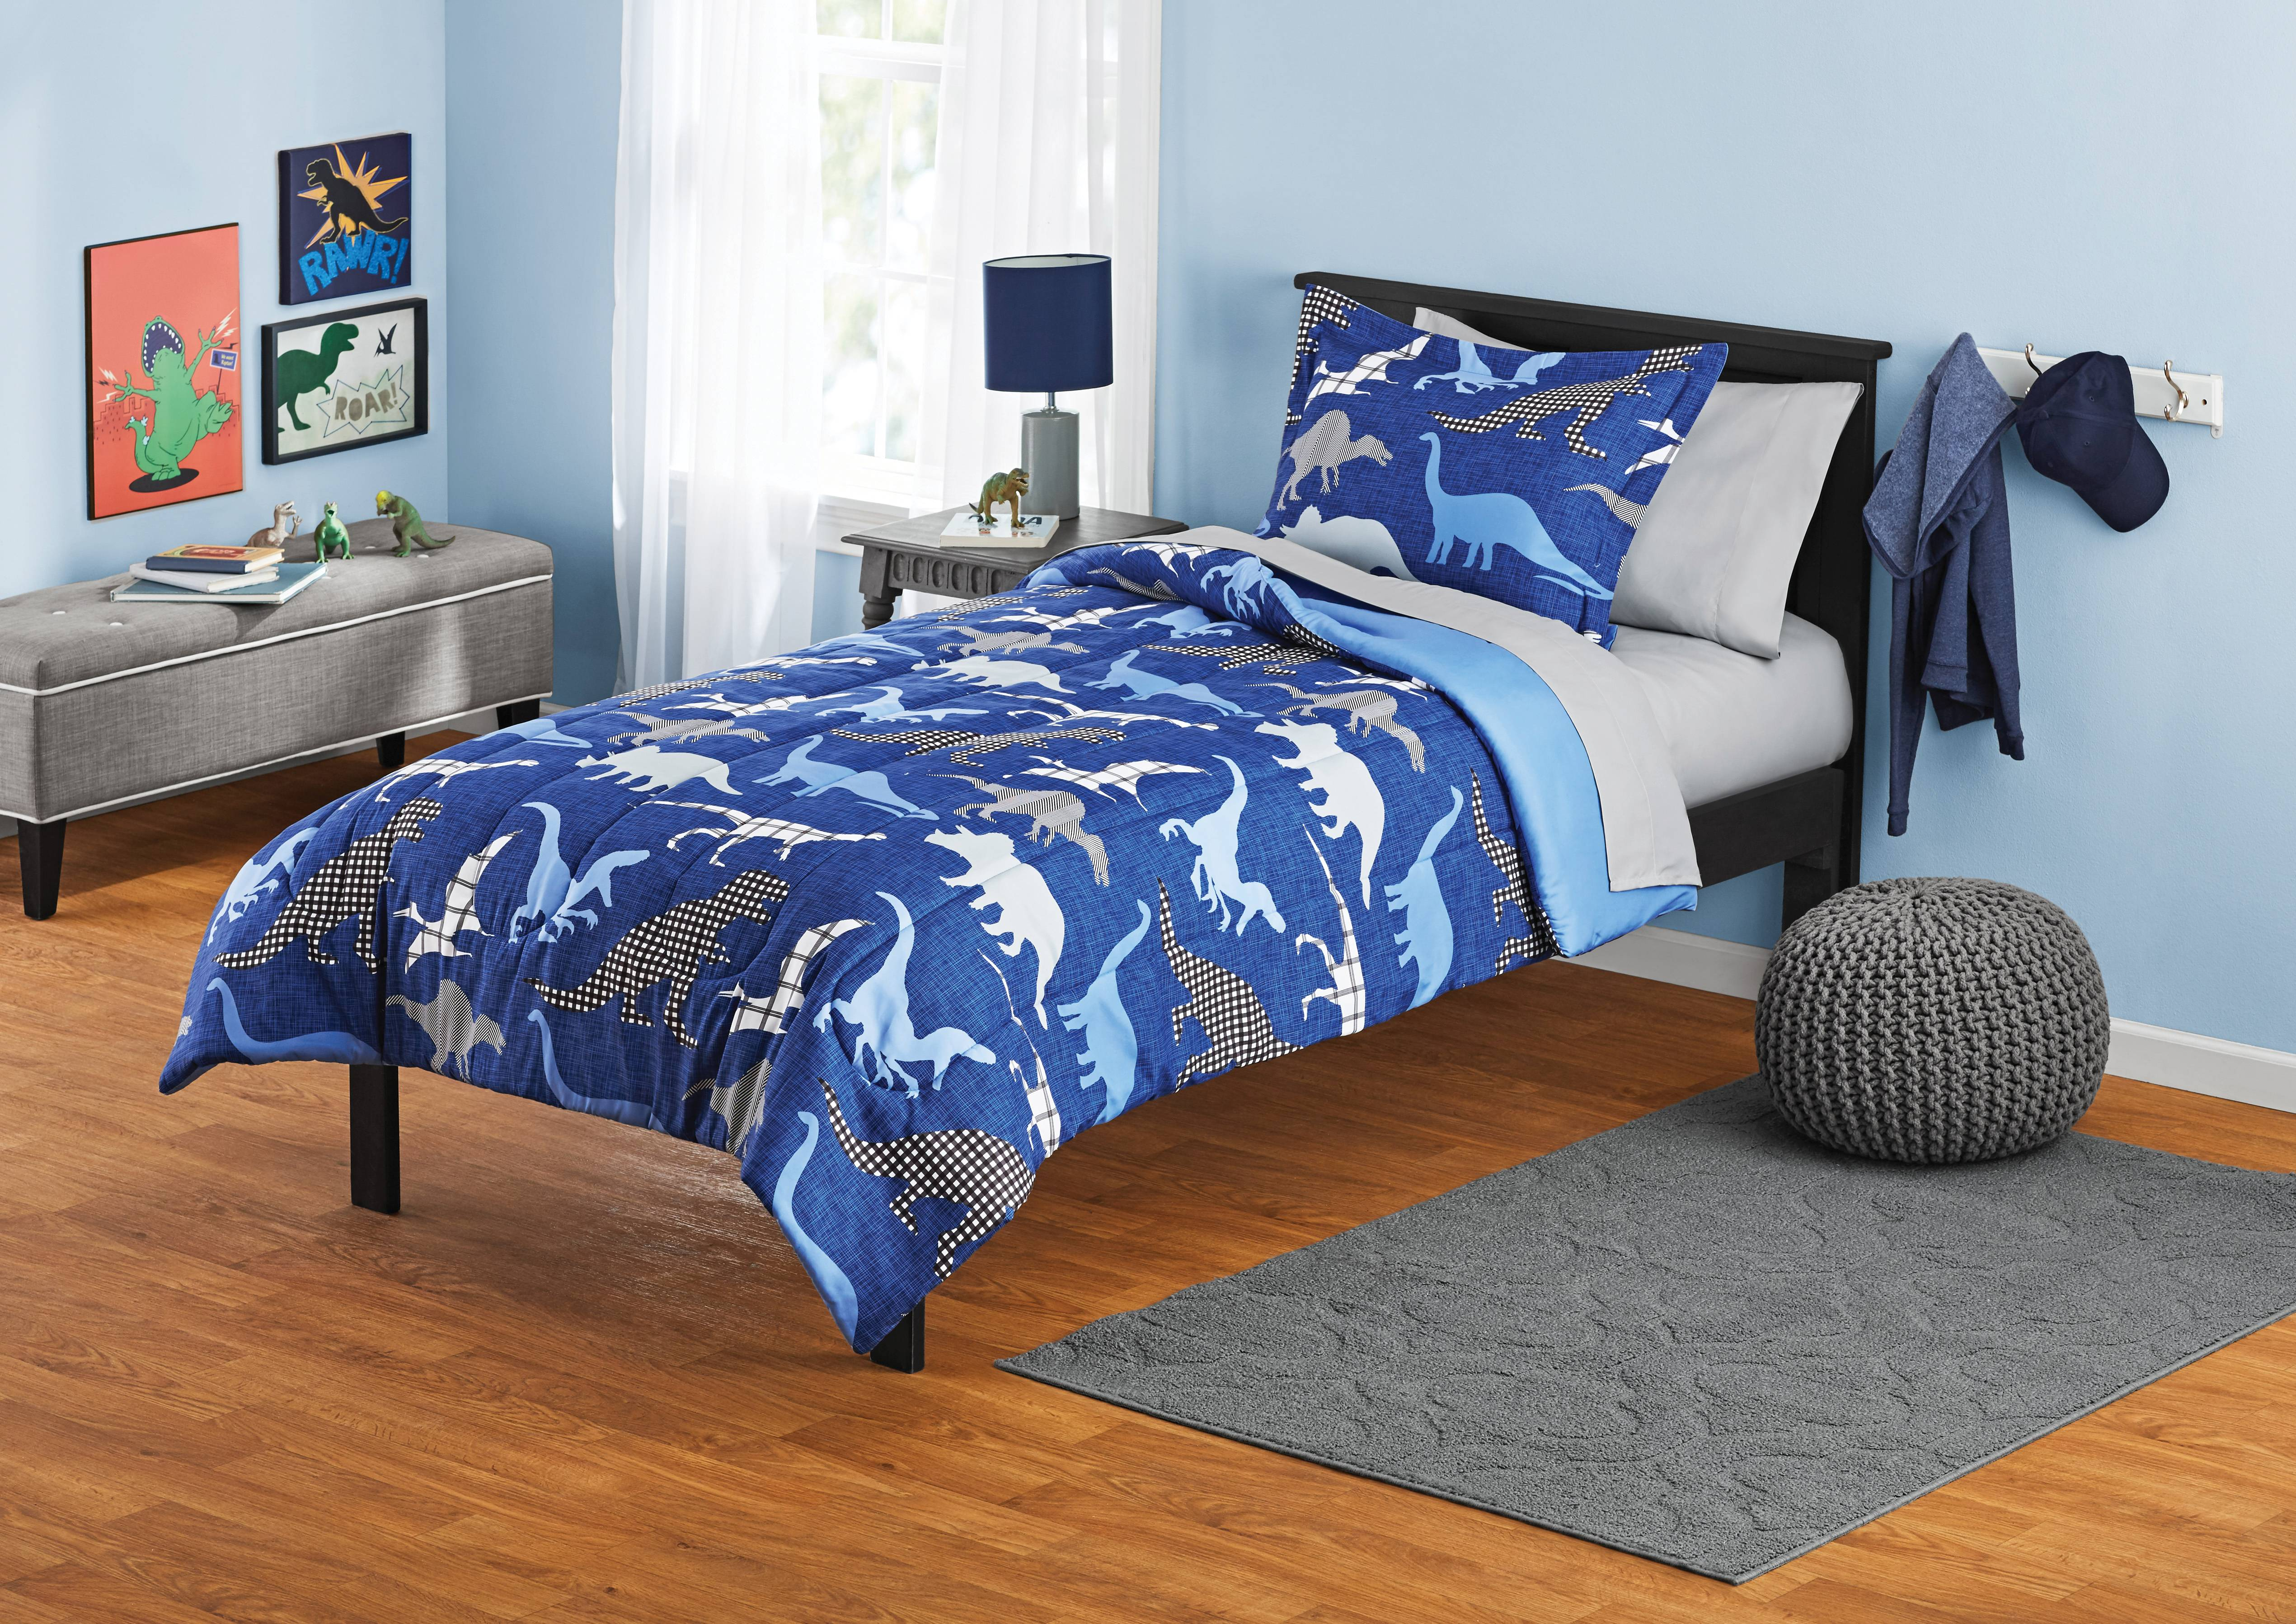 Your Zone Blue Dinosaurs Bed in a Bag Kids Bedding Set ...